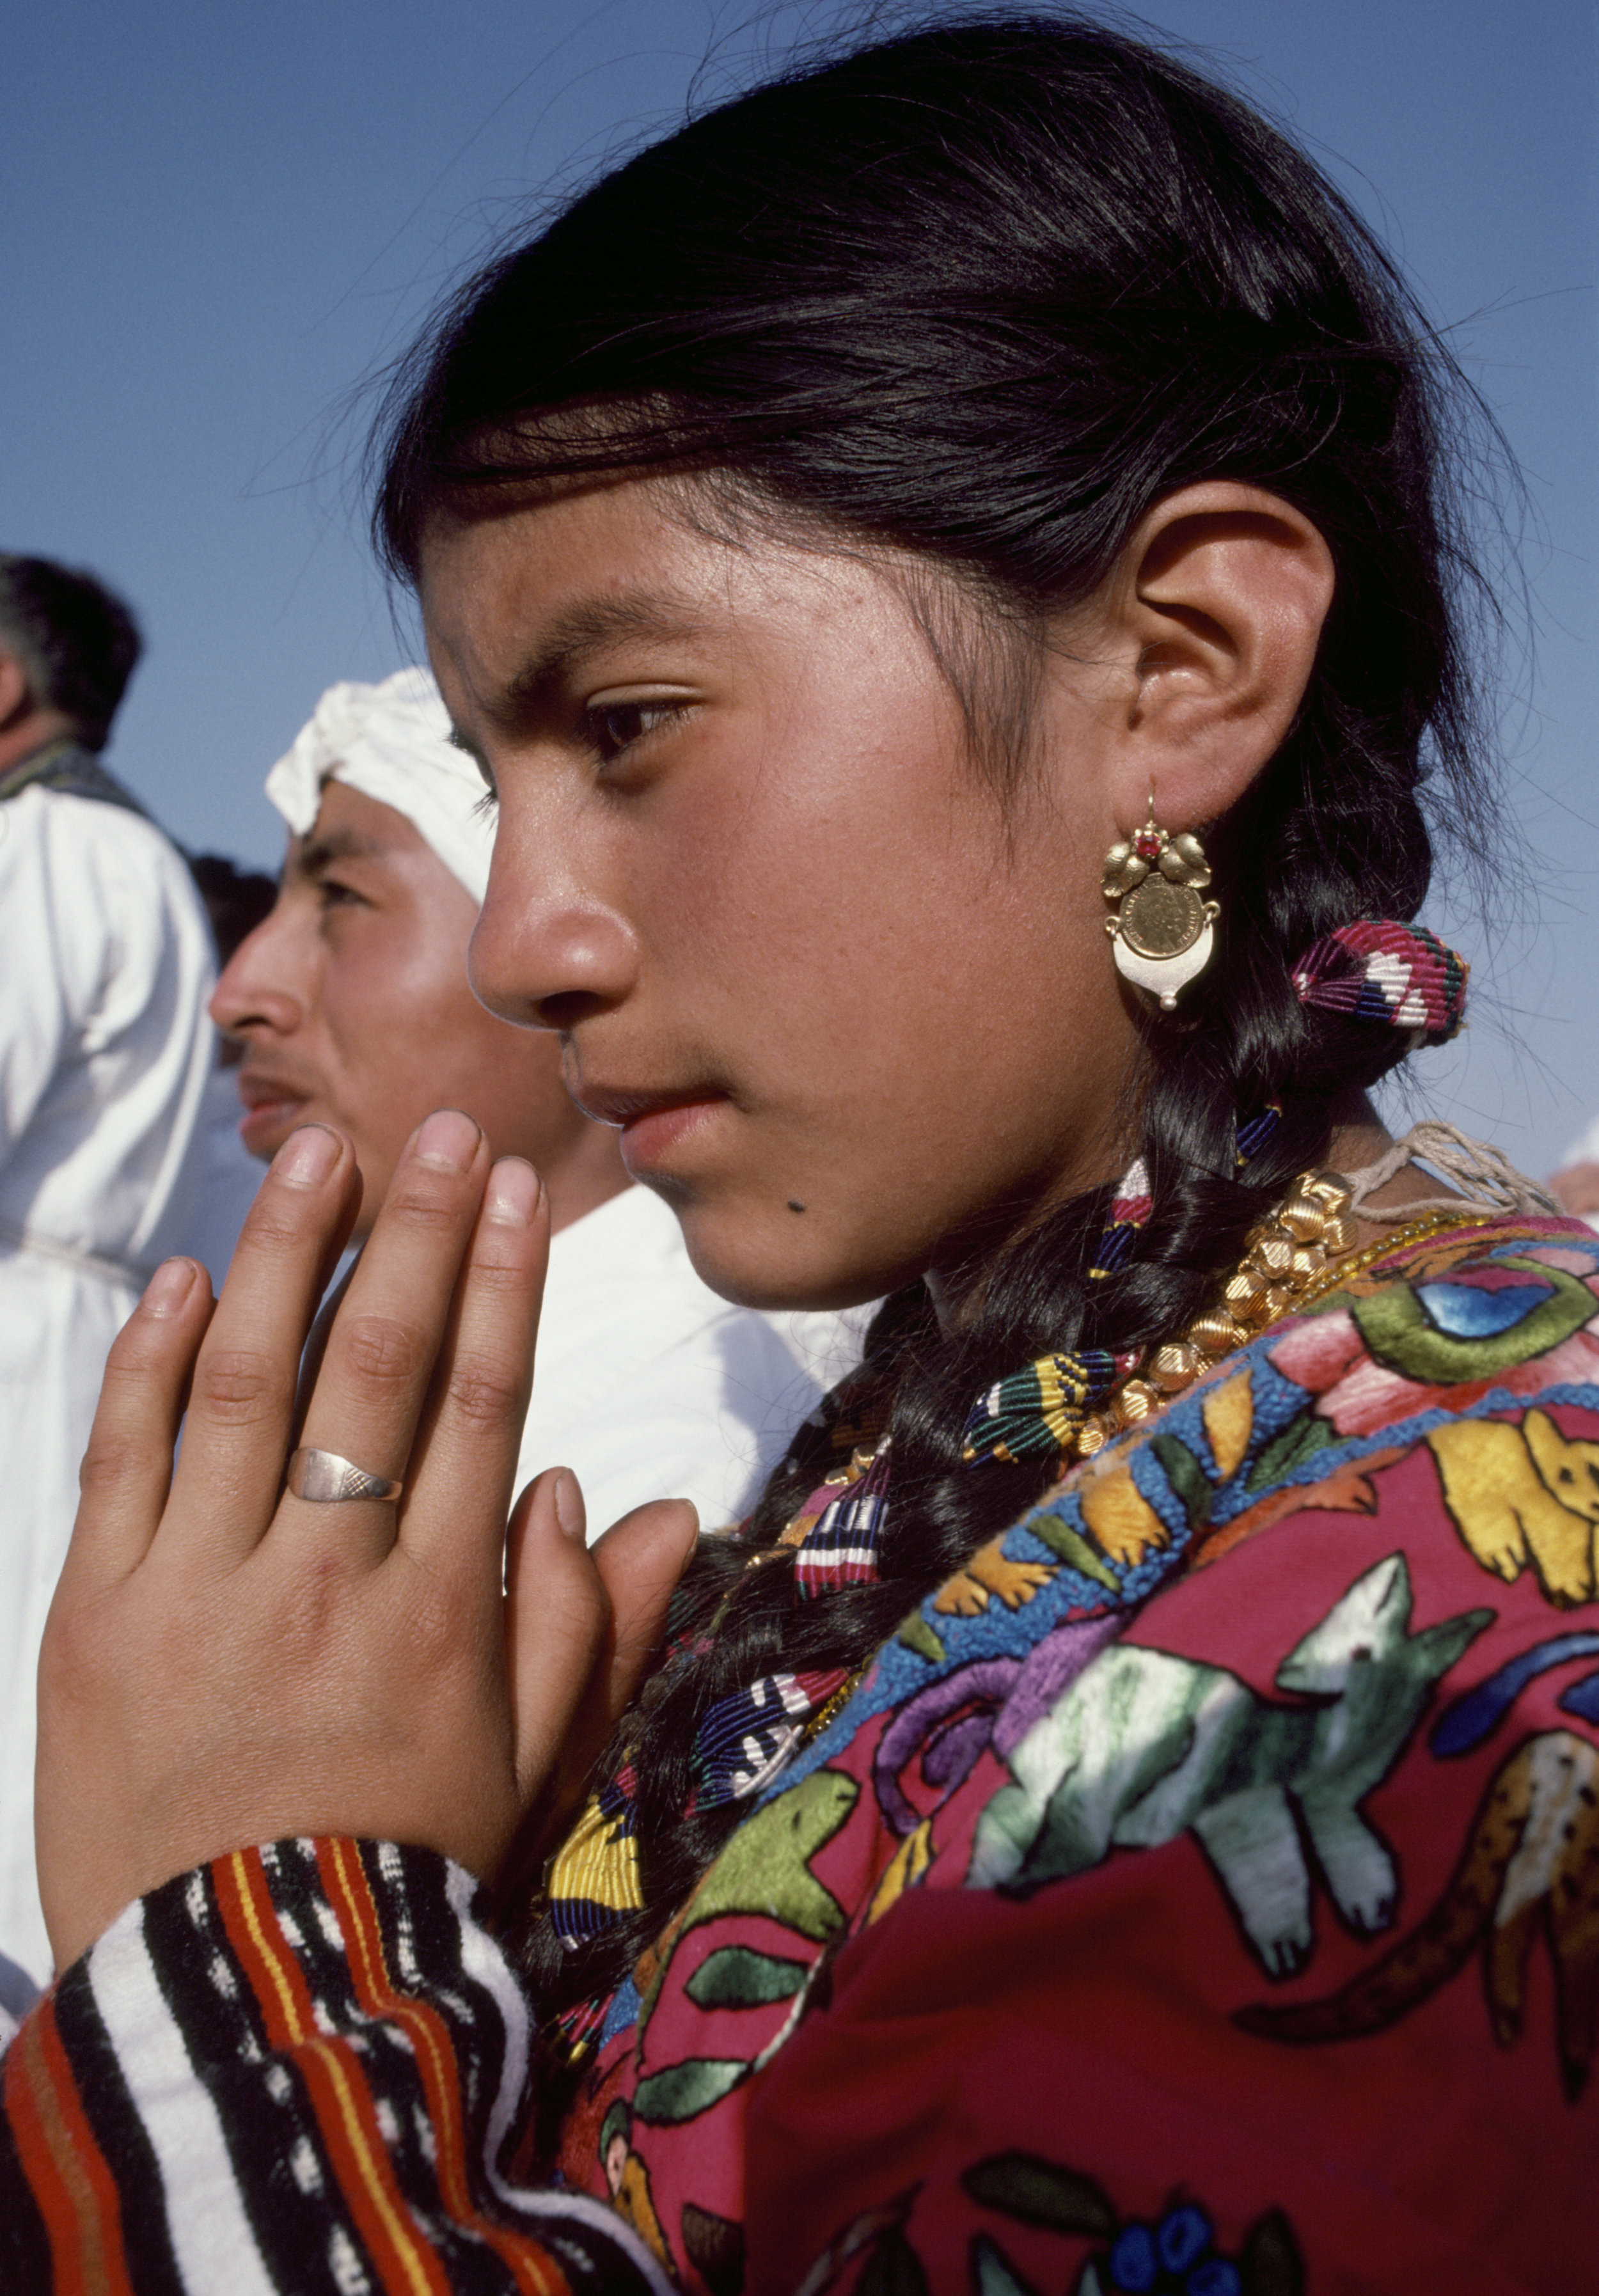 A young Maya woman prays during the visit of Pope John Paul ll in Guatemala City, Guatemala, March 7, 1983. During his visit, the Pope condemned the country's human rights atrocities and the state's violence and oppression against its indigenous Maya population.